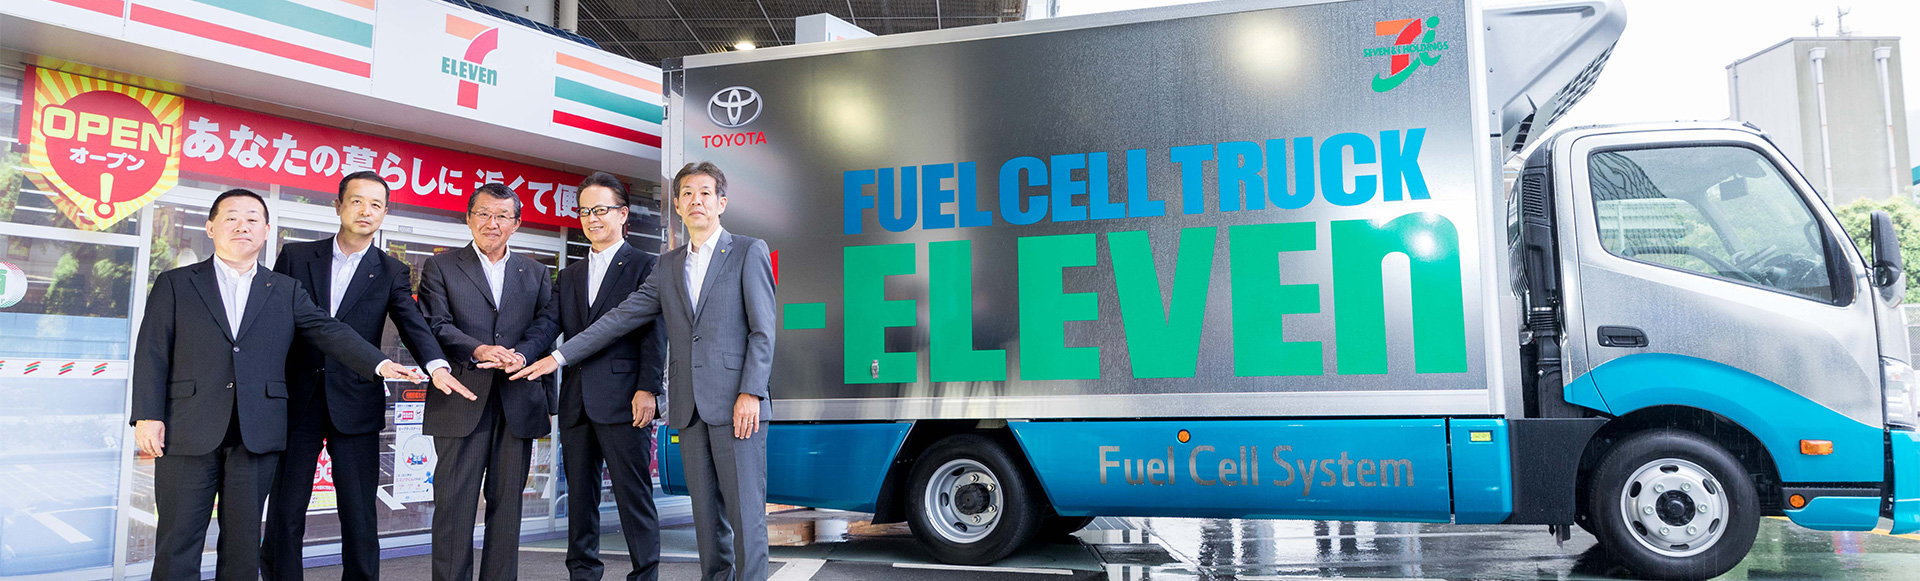 Seven-Eleven Japan and Toyota to Launch Joint Next-generation Convenience Store Project in Autumn 2019 toward Greater CO2 Emissions Reduction